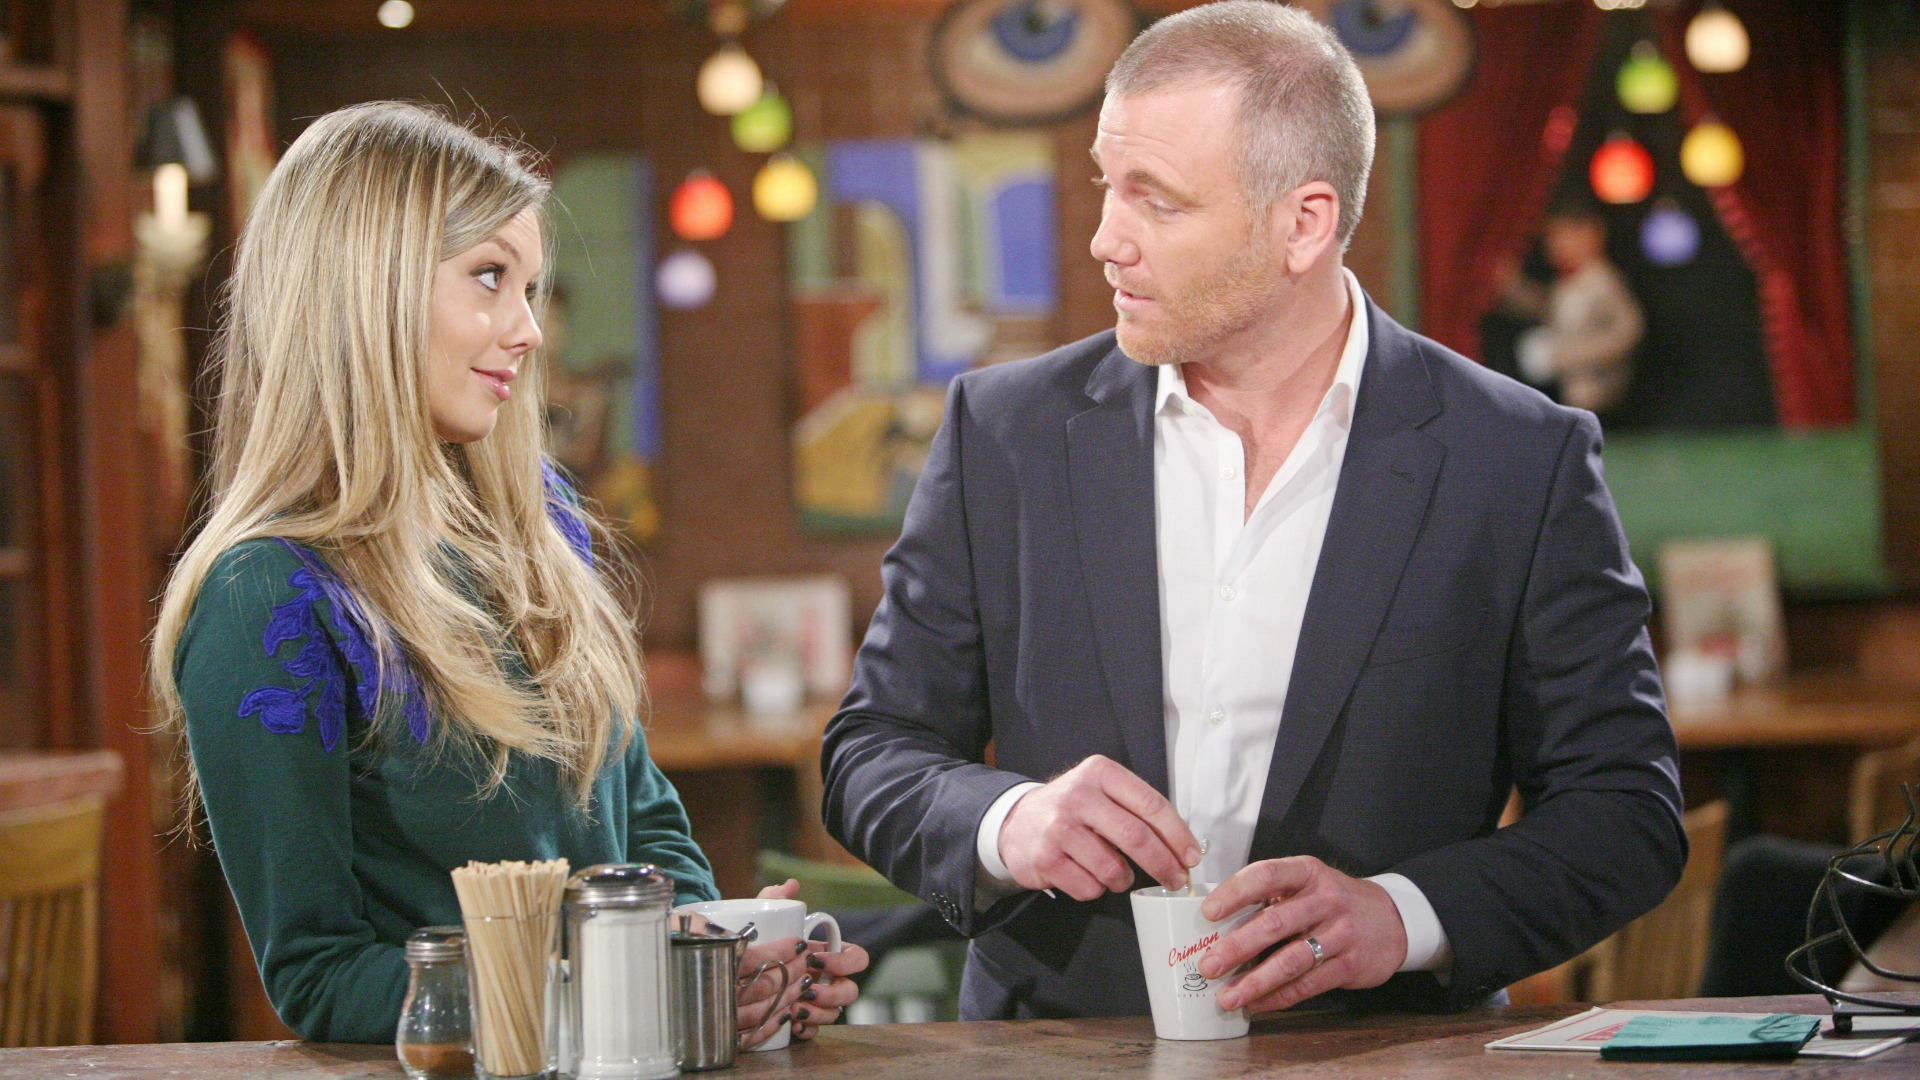 Abby promises to put their marriage first.